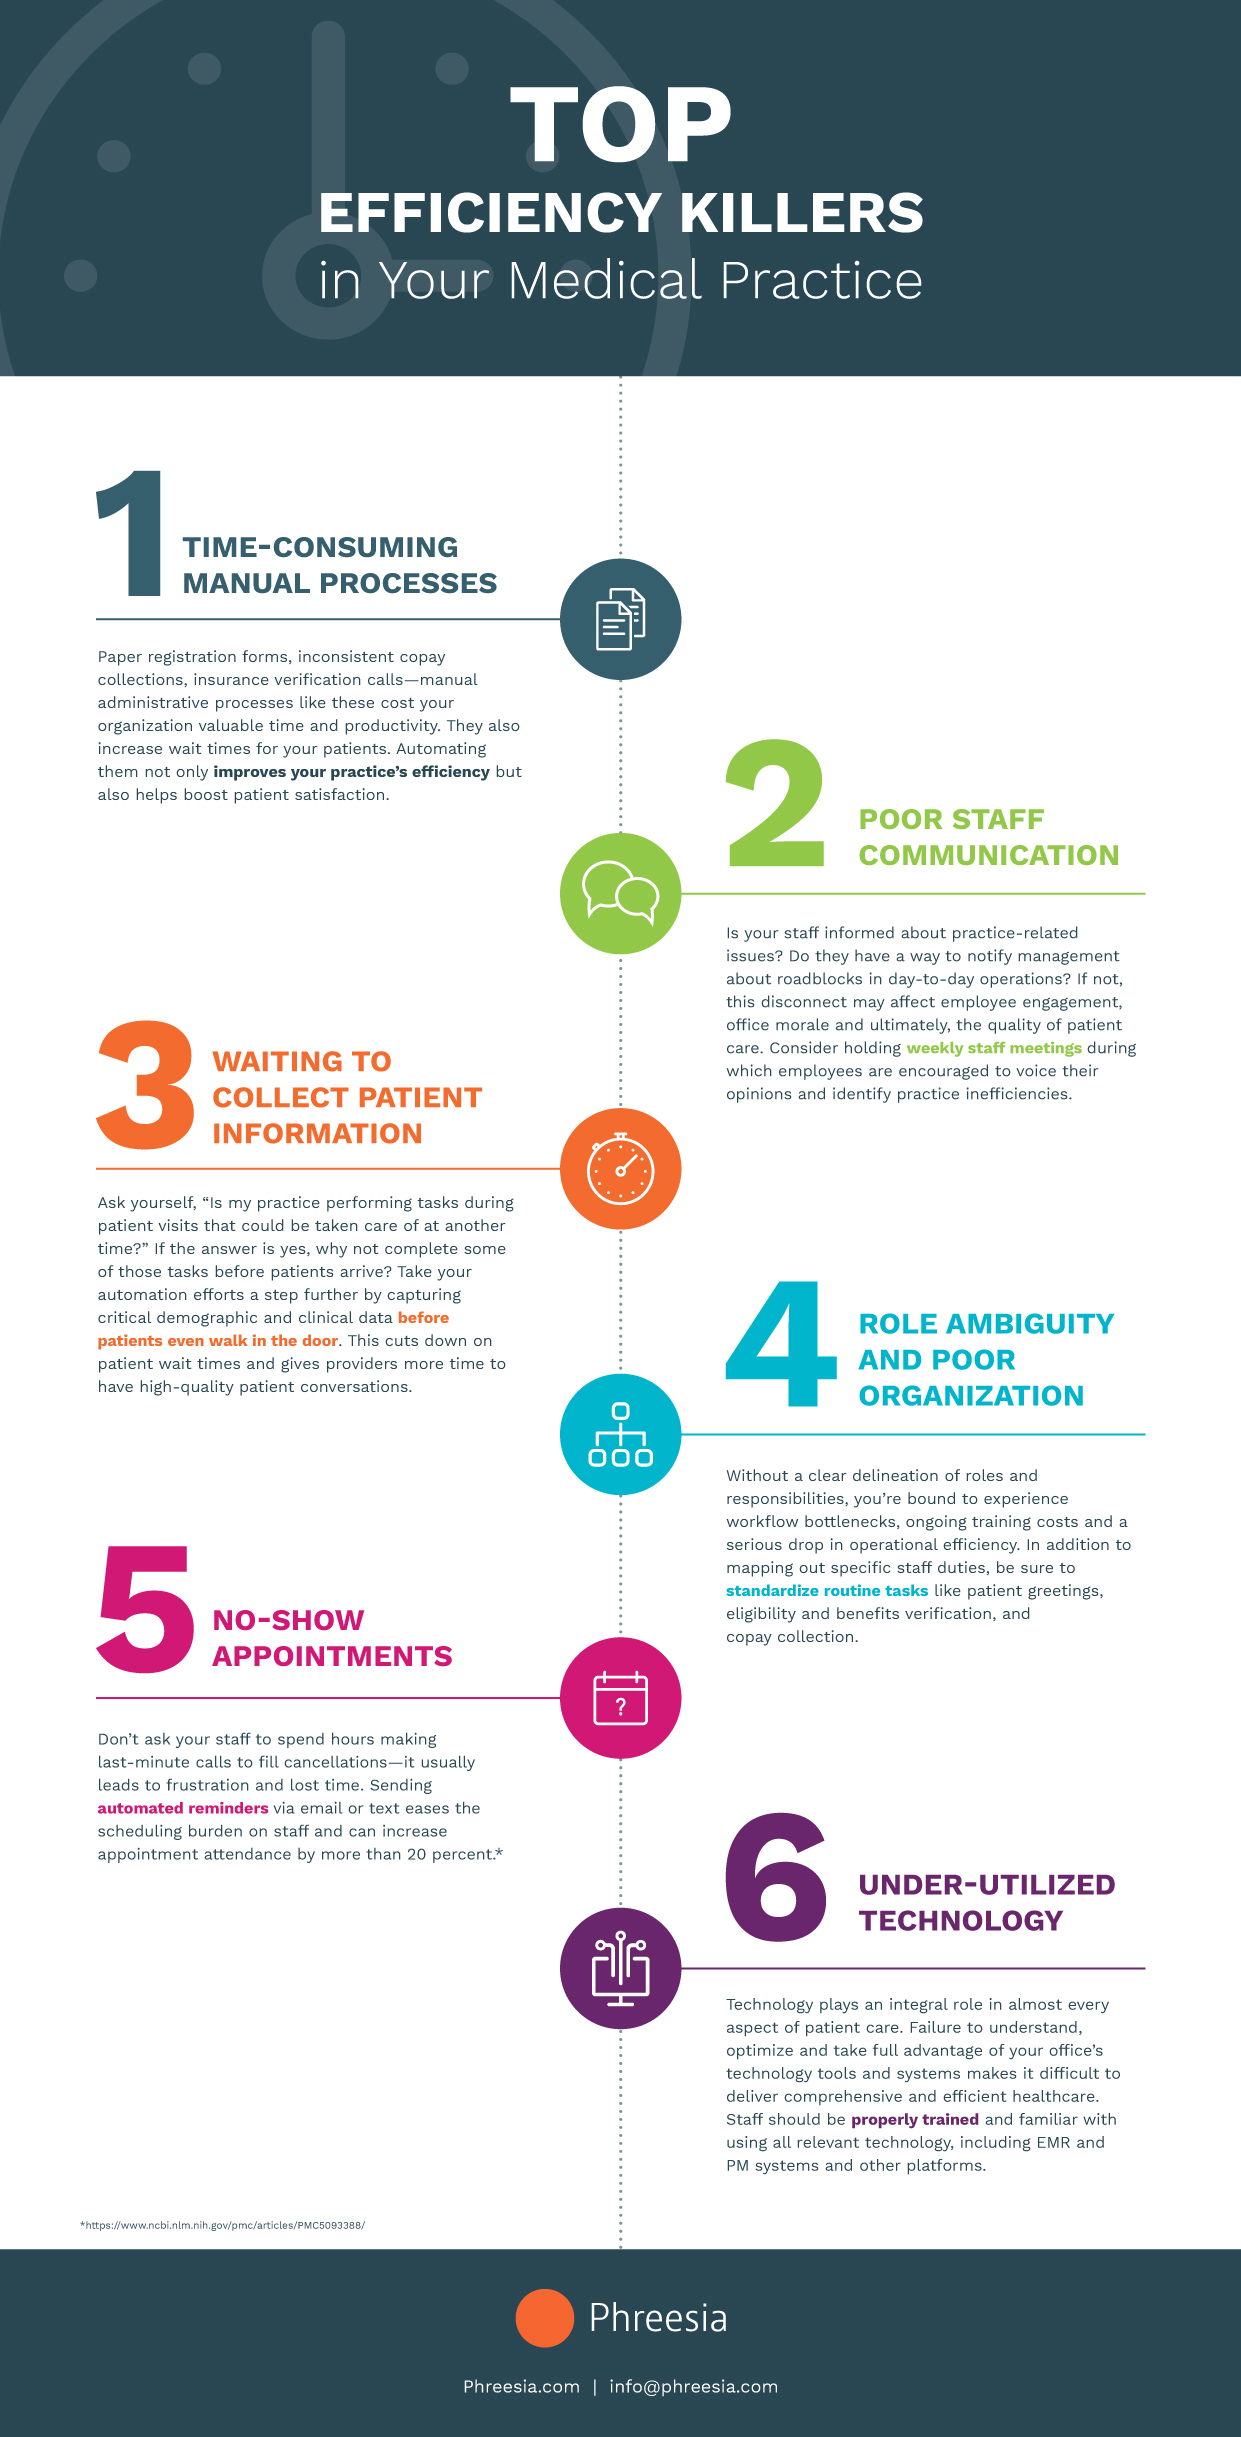 Infographic explaining the top efficiency killers for medical practices